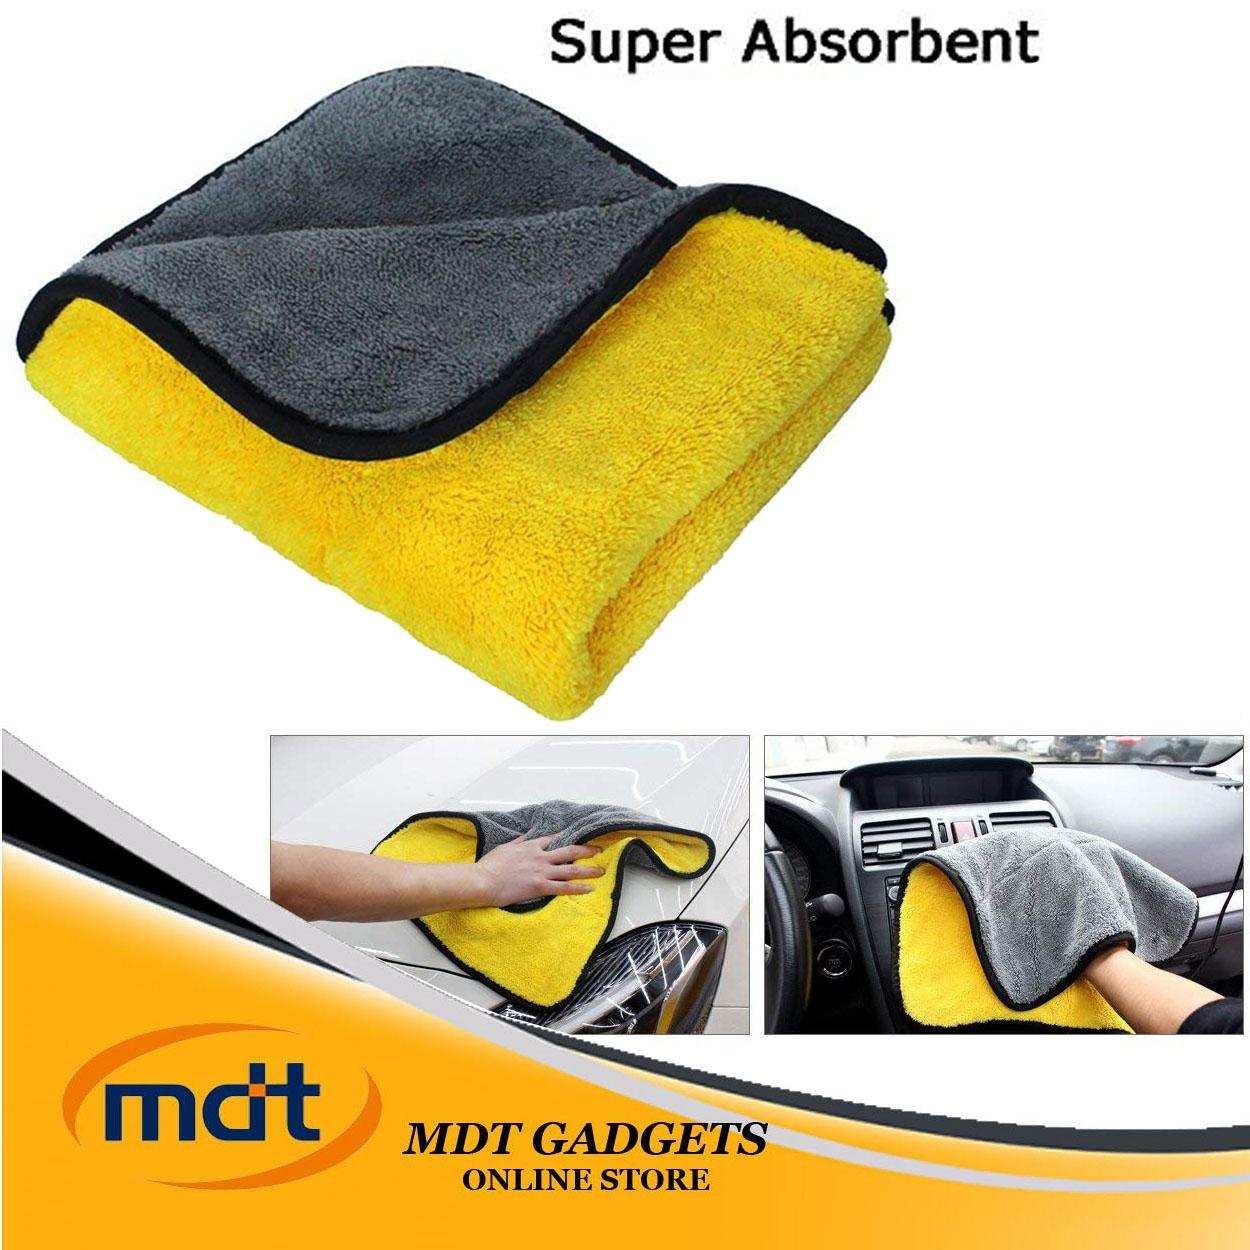 Super Absorbent Car Wash Towel Cleaning Drying Towel (Yellow-Gray) image on snachetto.com